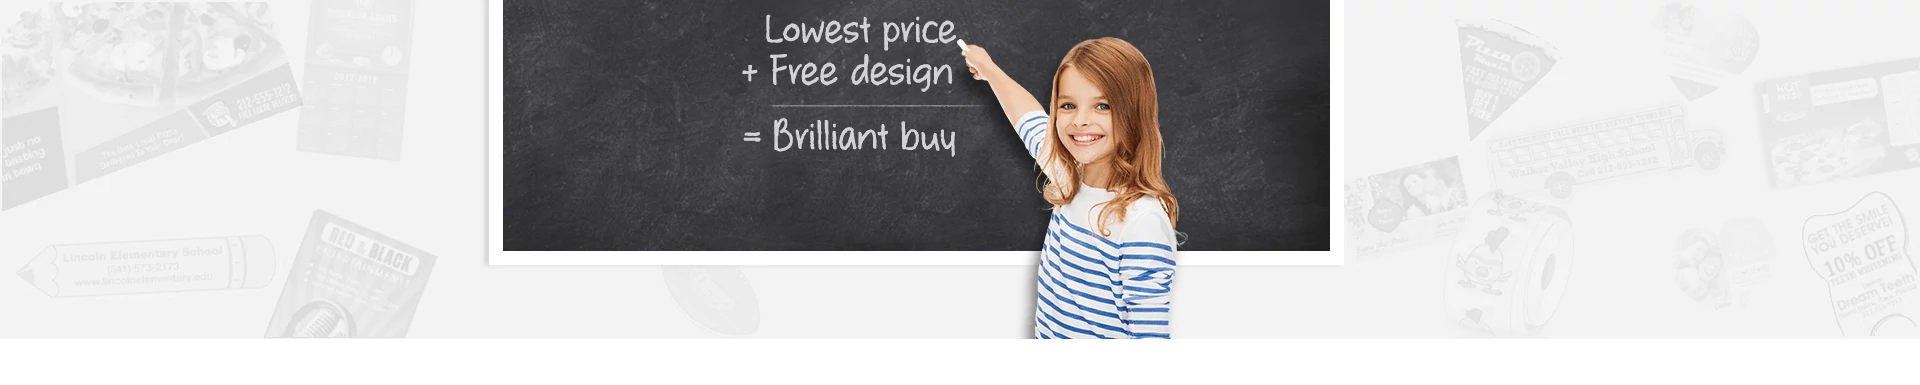 Lowest Price | Free Design